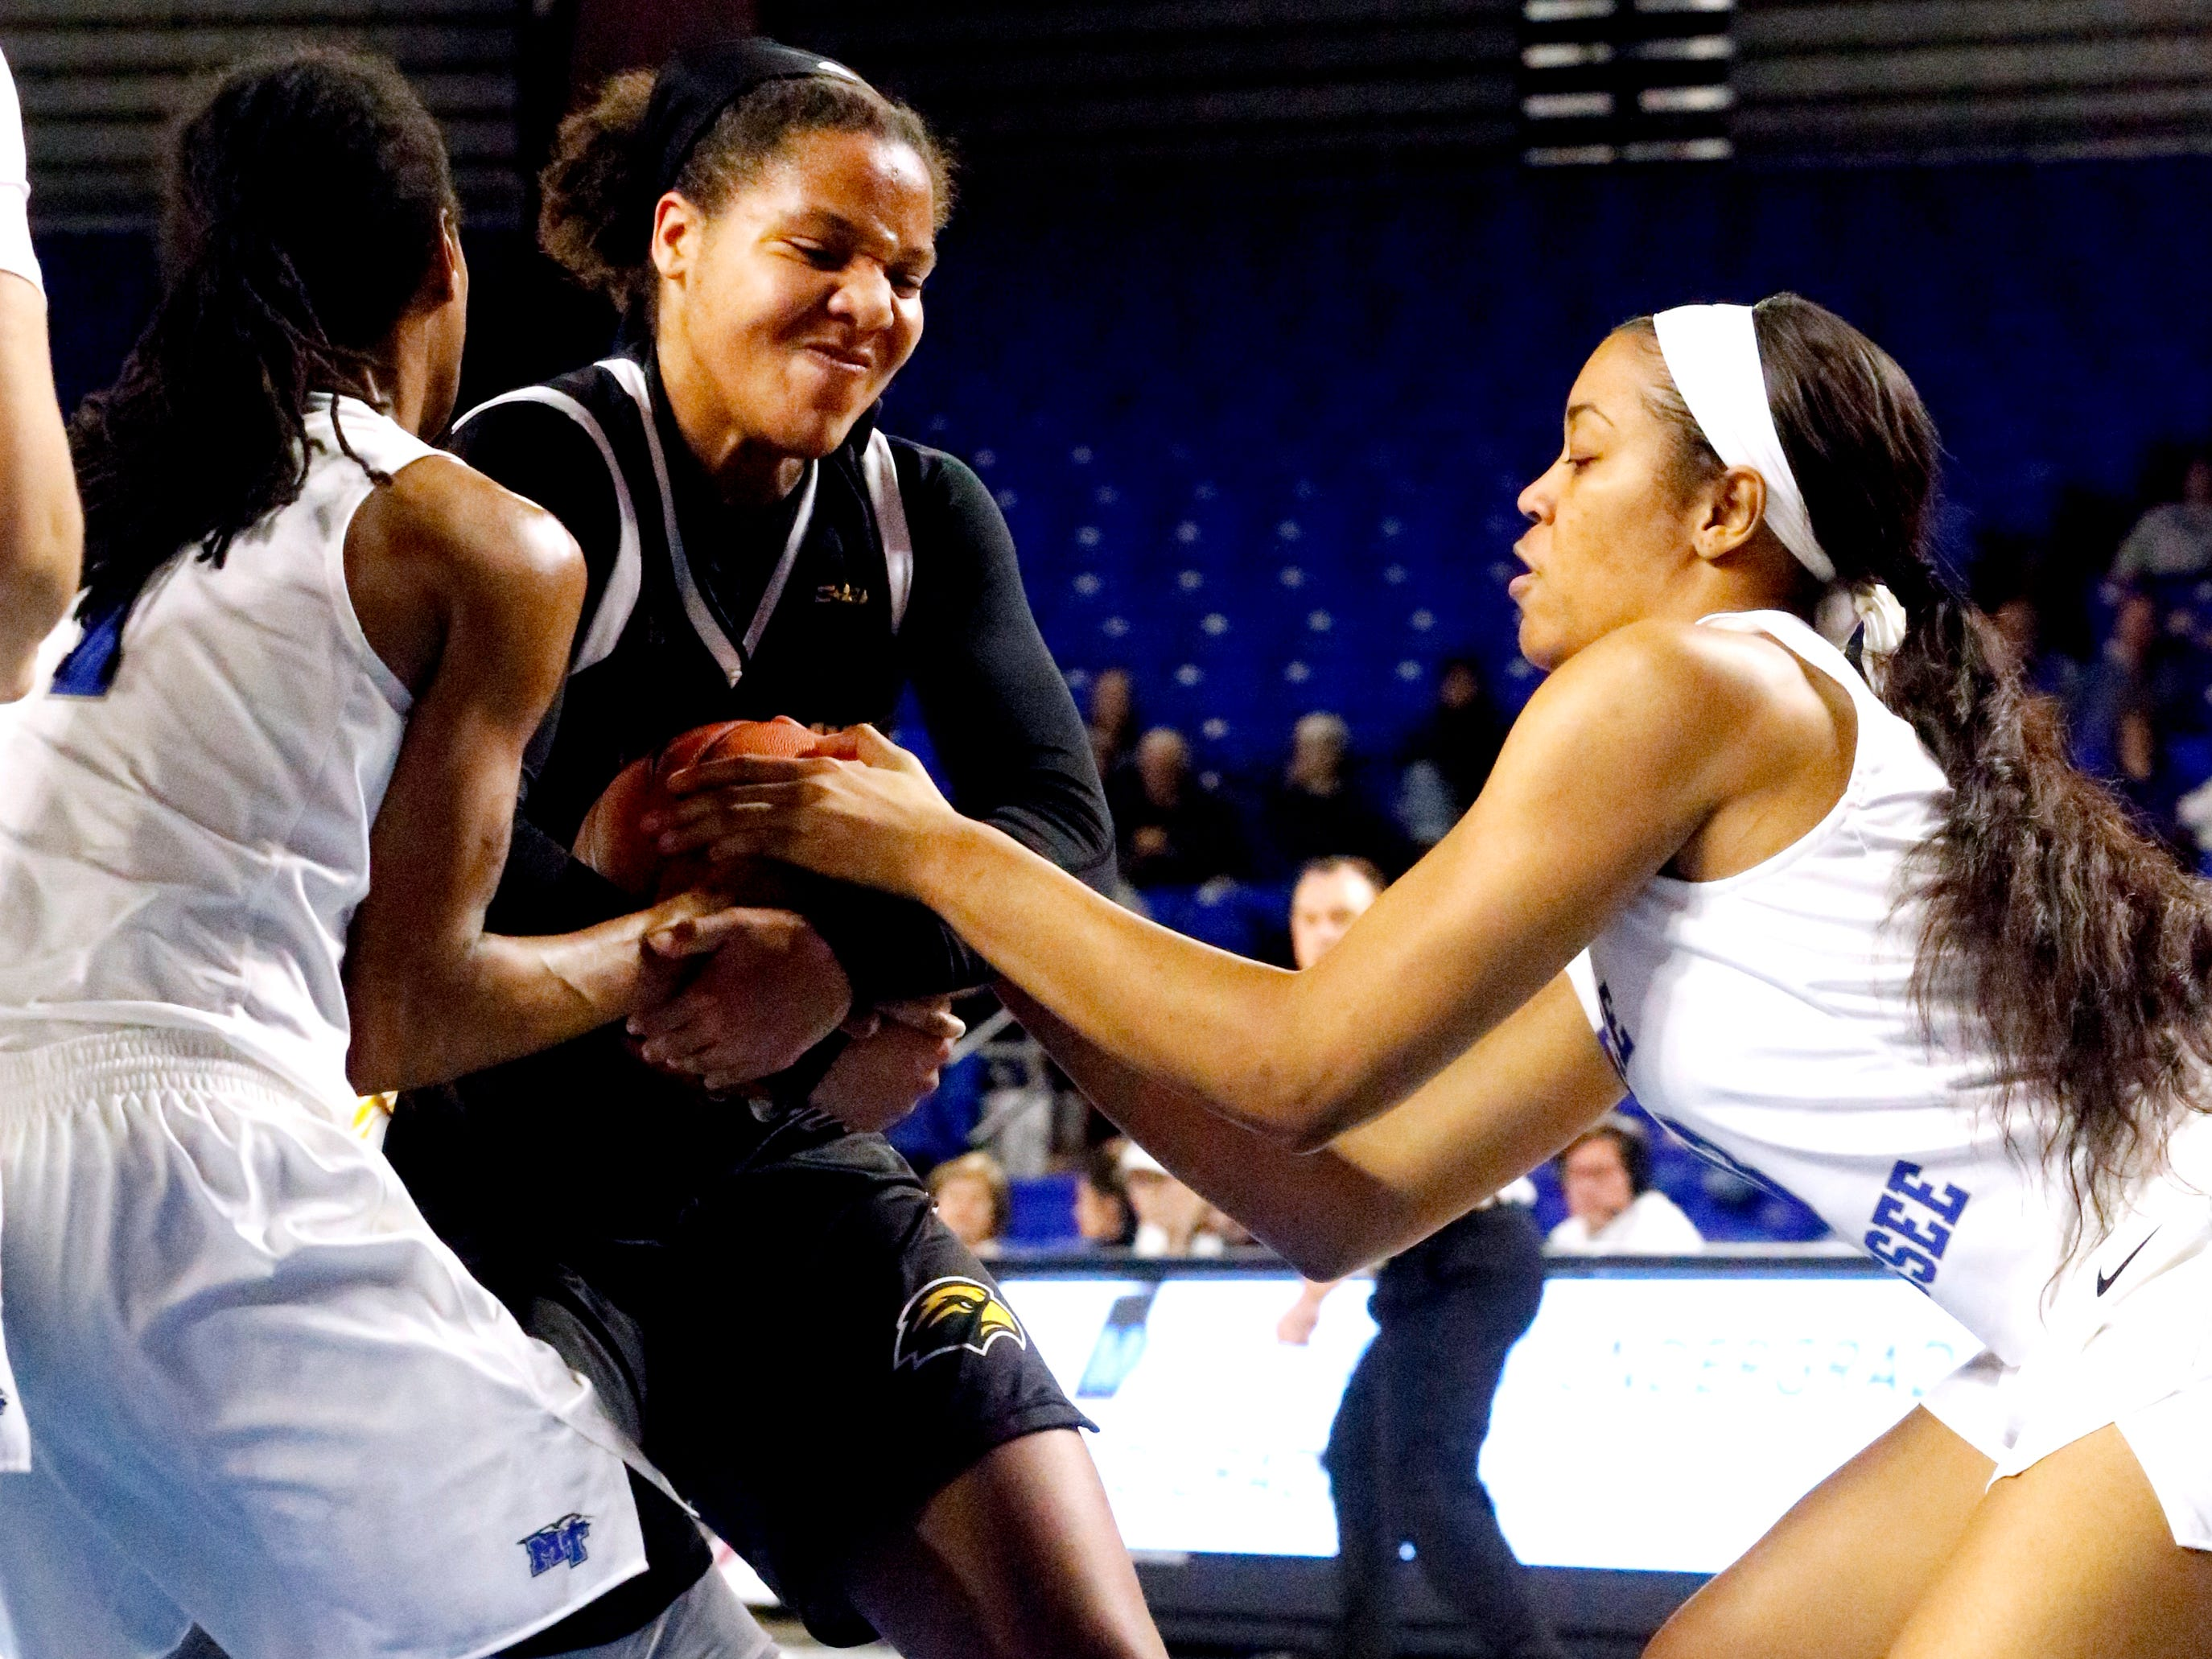 MTSU's guard A'Queen Hayes (1), Southern Miss' Megan Brown (22) and MTSU's forward Jordan Majors (13) all fight for the ball, on Thursday Jan. 10, 2019.